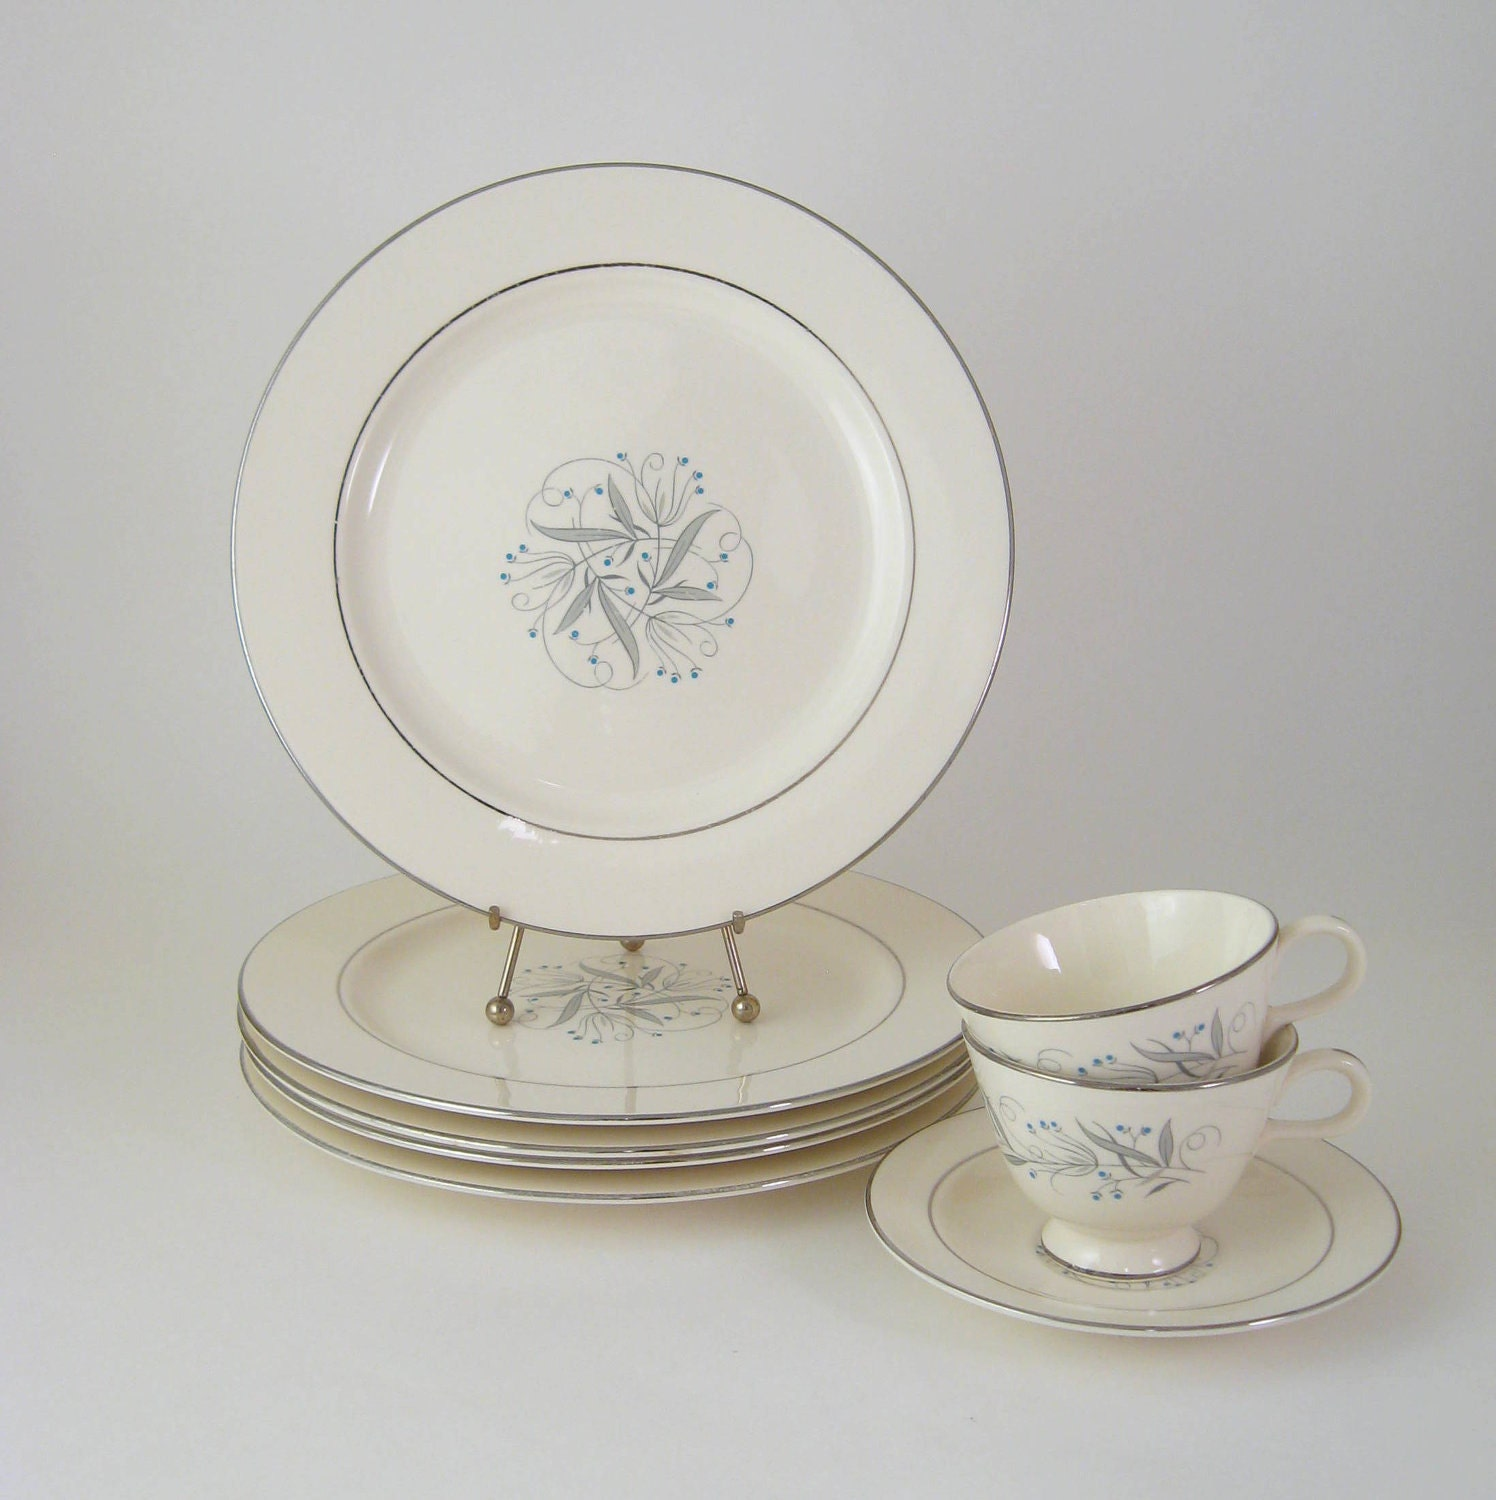 1950s Dishes: Your Place To Buy And Sell All Things Handmade